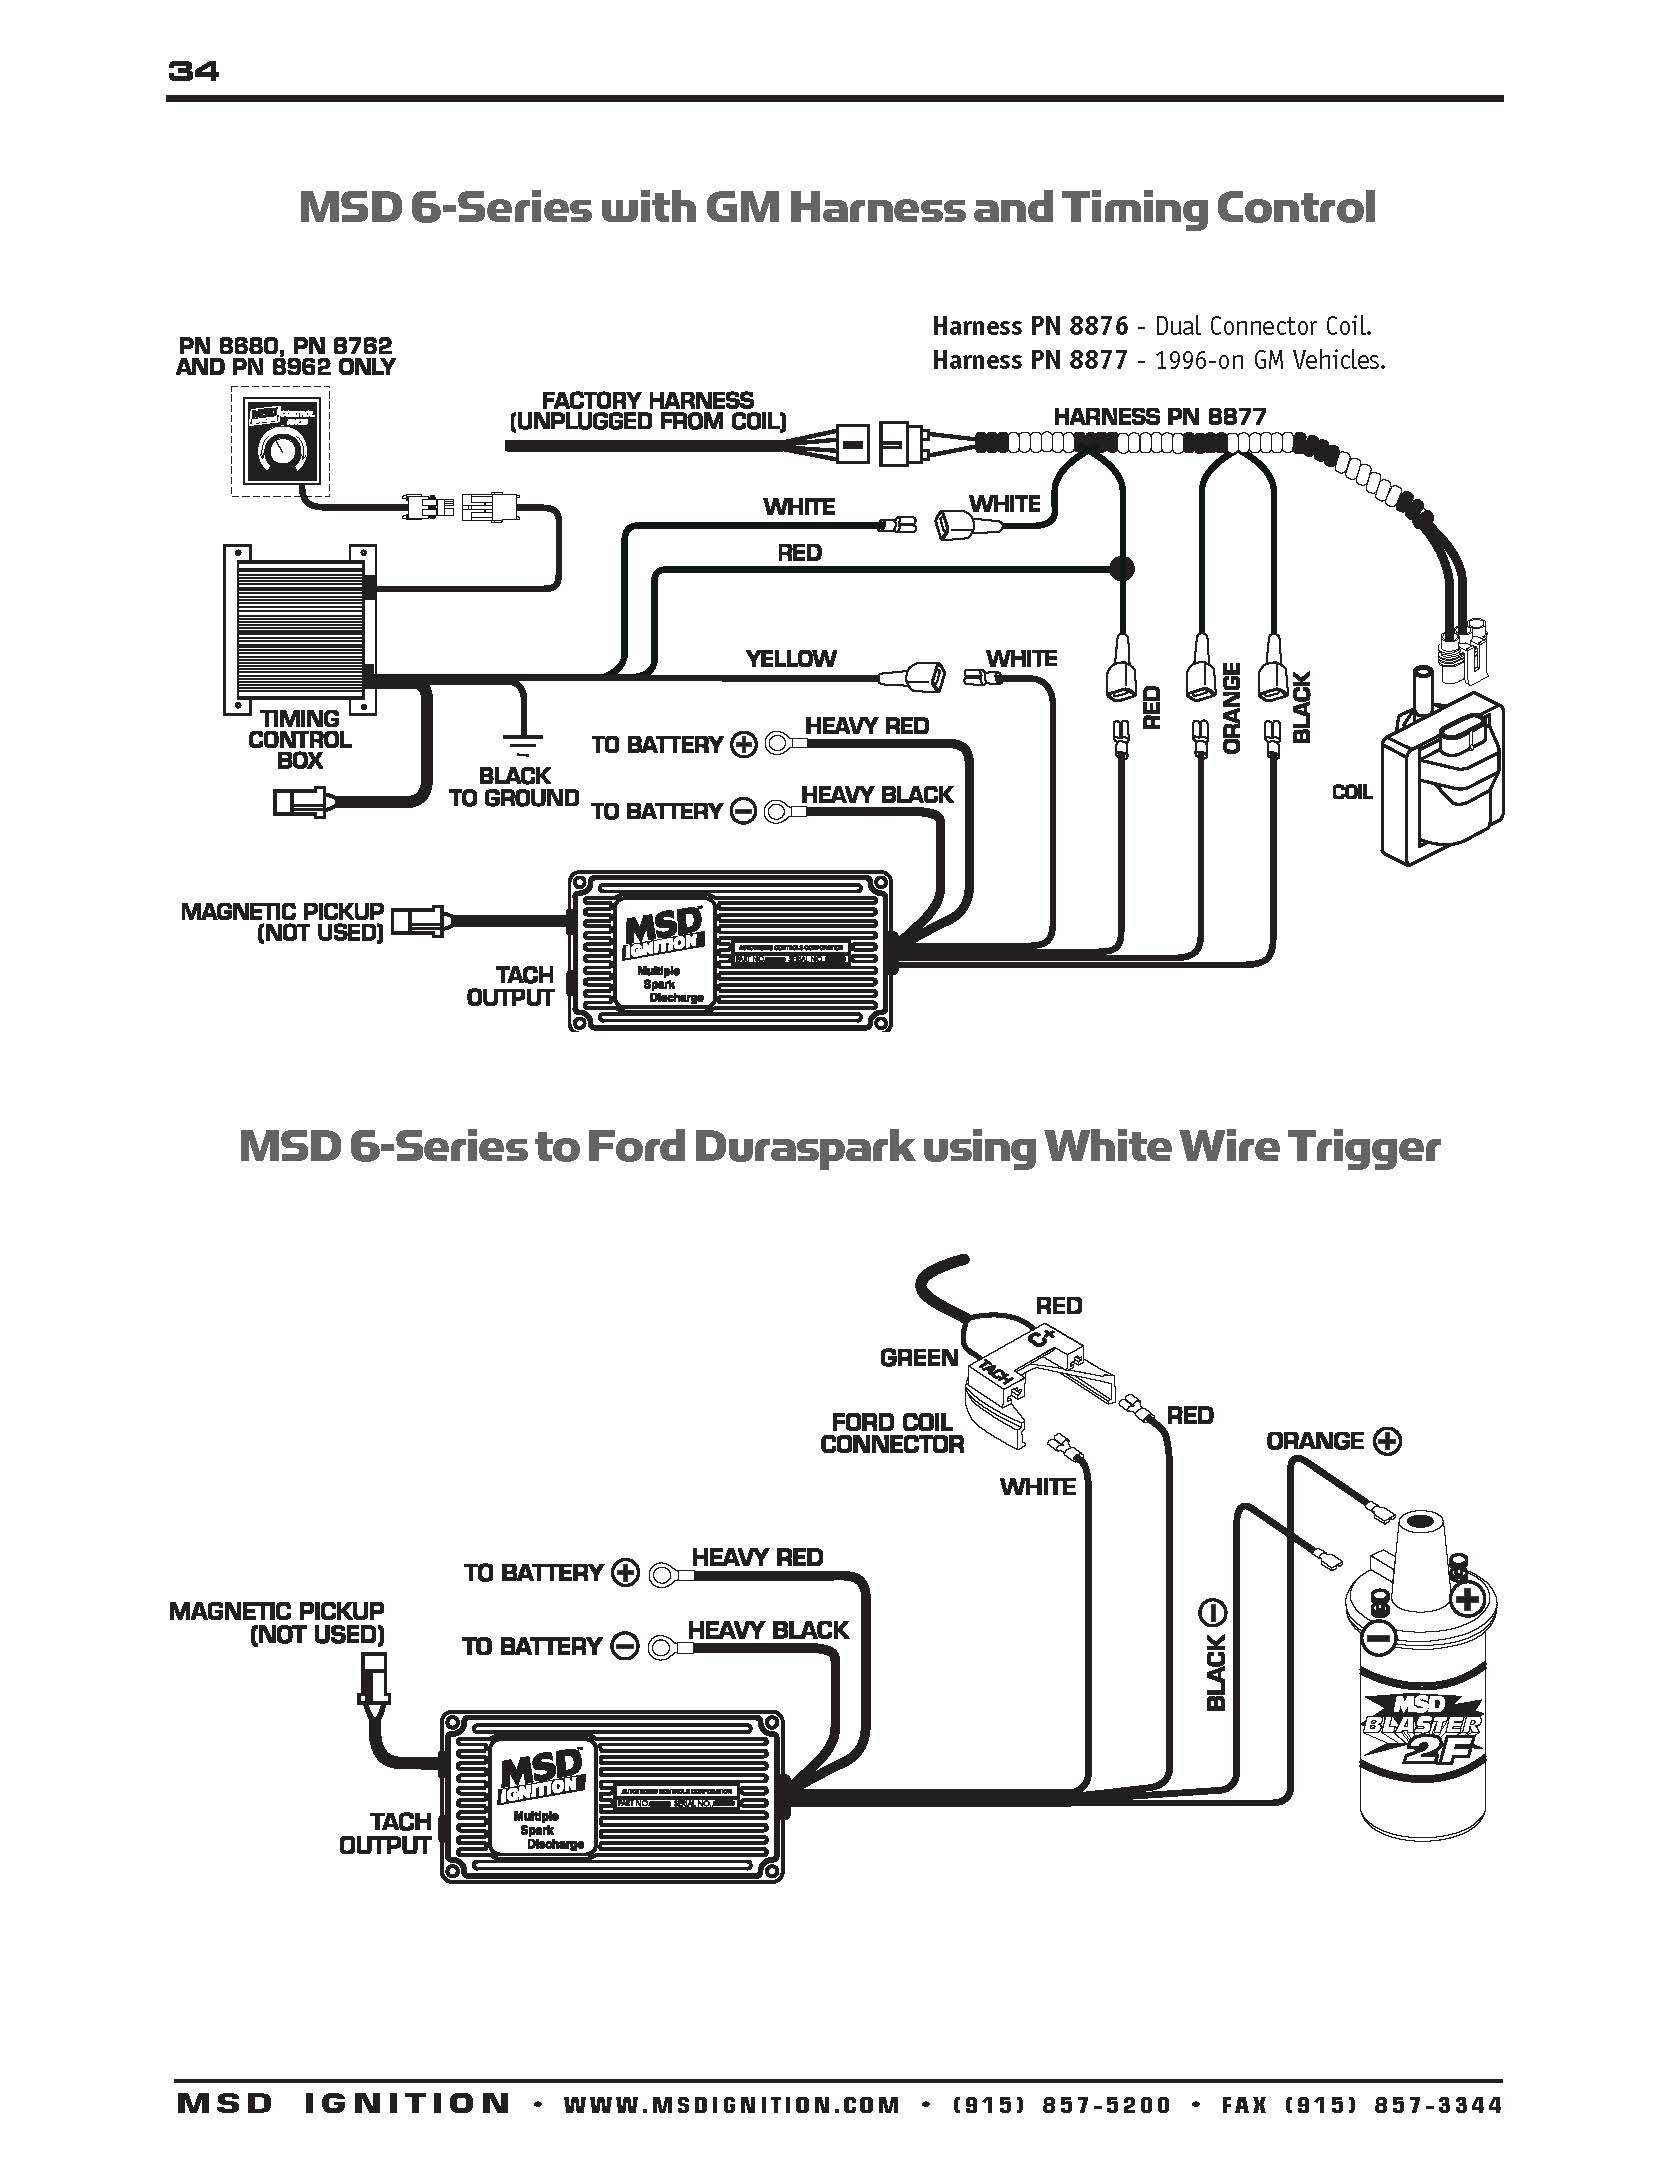 Ignition Coil Distributor Wiring Diagram Fresh How to Wire An Ignition Coil Diagram Diagram Of Ignition Coil Distributor Wiring Diagram